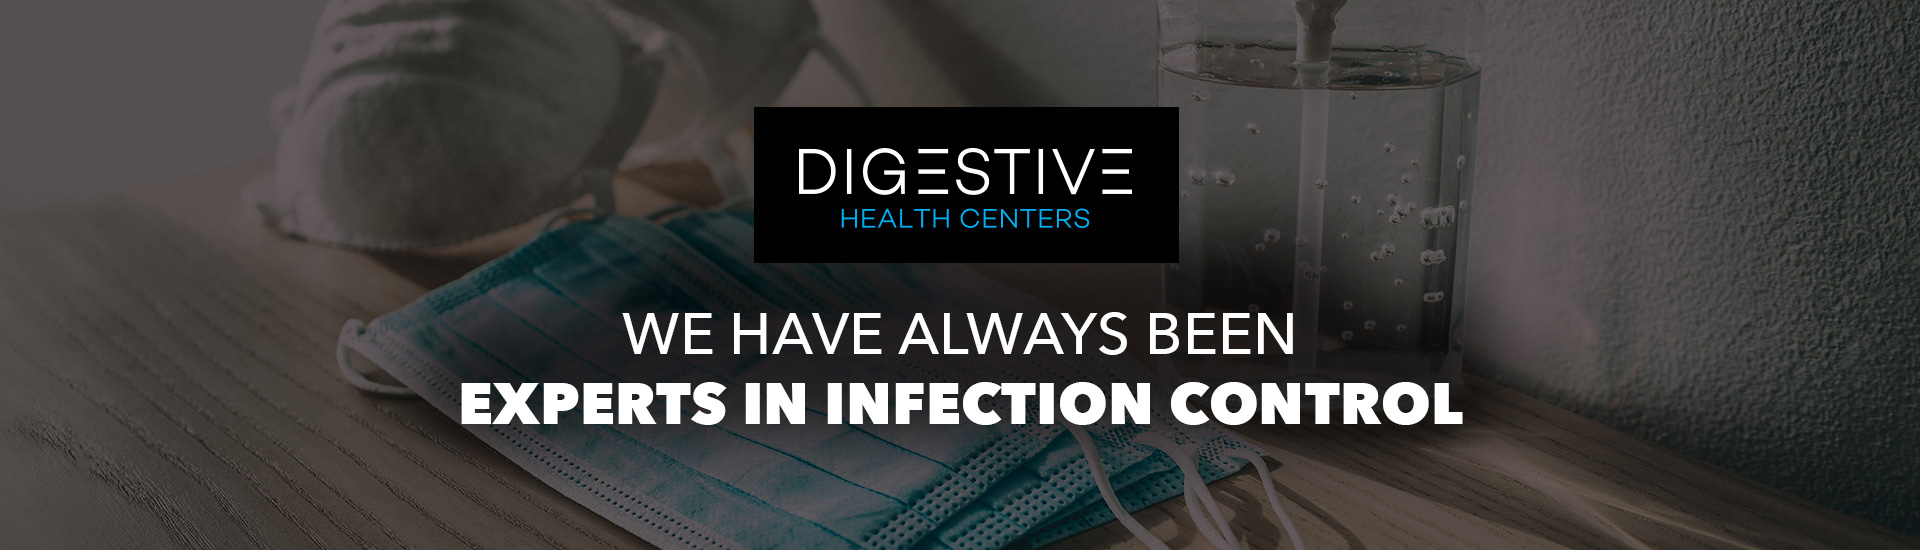 Digestive Health Centers - Experts in Infection Control